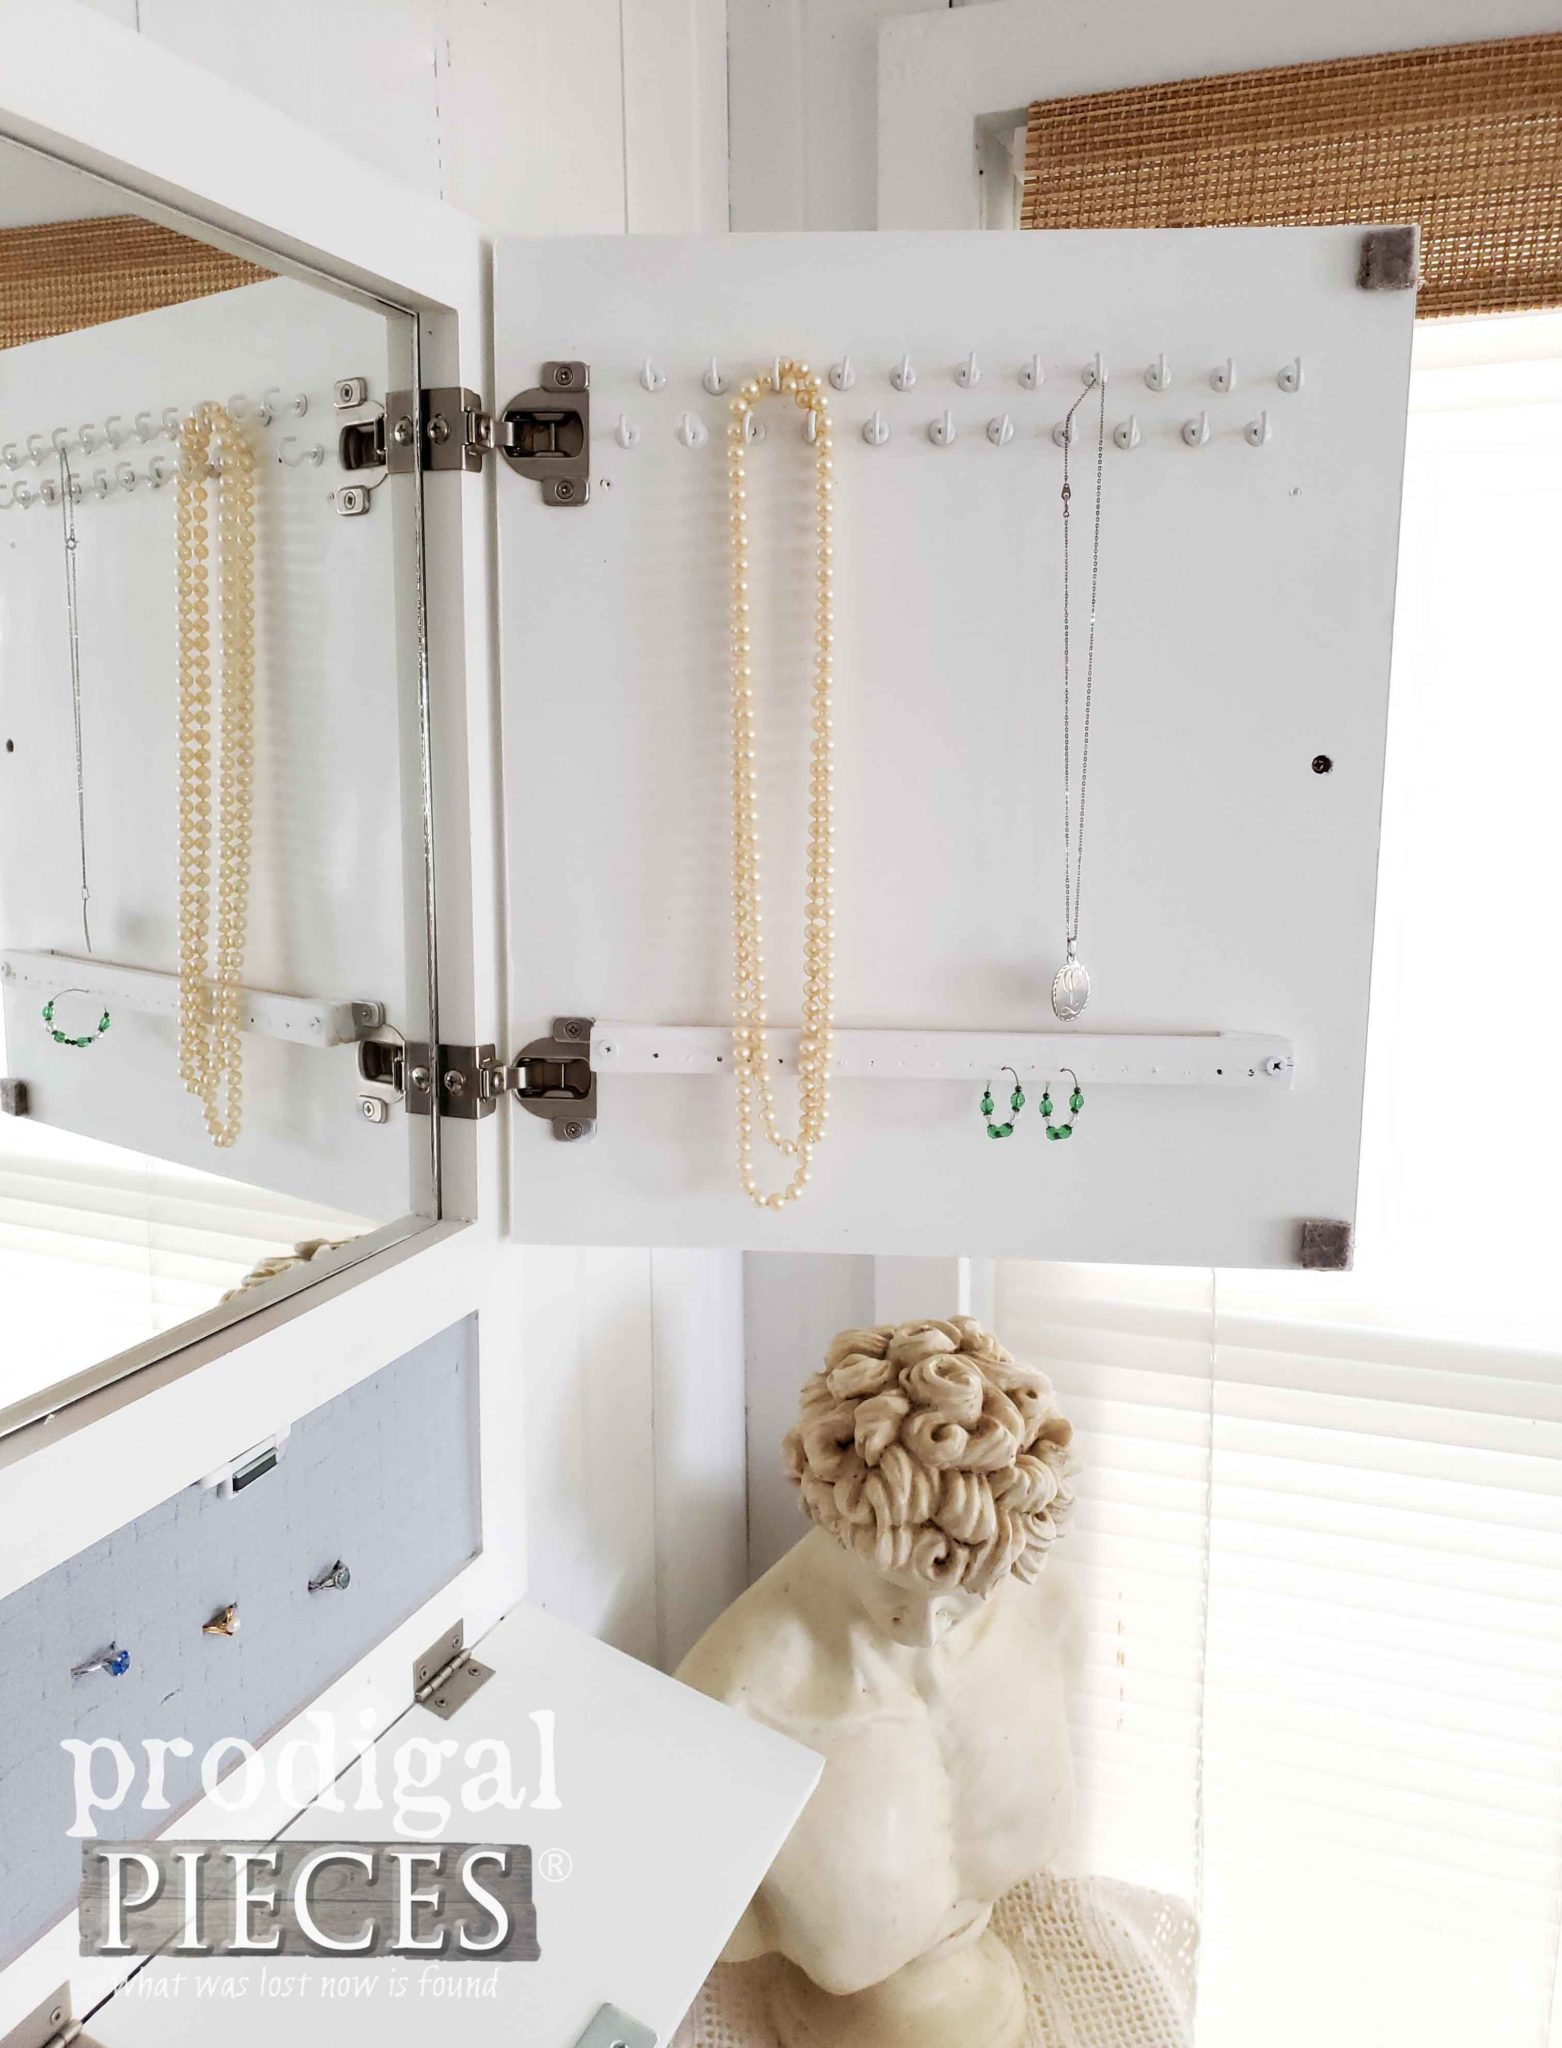 Inside White Jewelry Cabinet Made from Repurposed Cupboard Door by Larissa of Prodigal Pieces | prodigalpieces.com